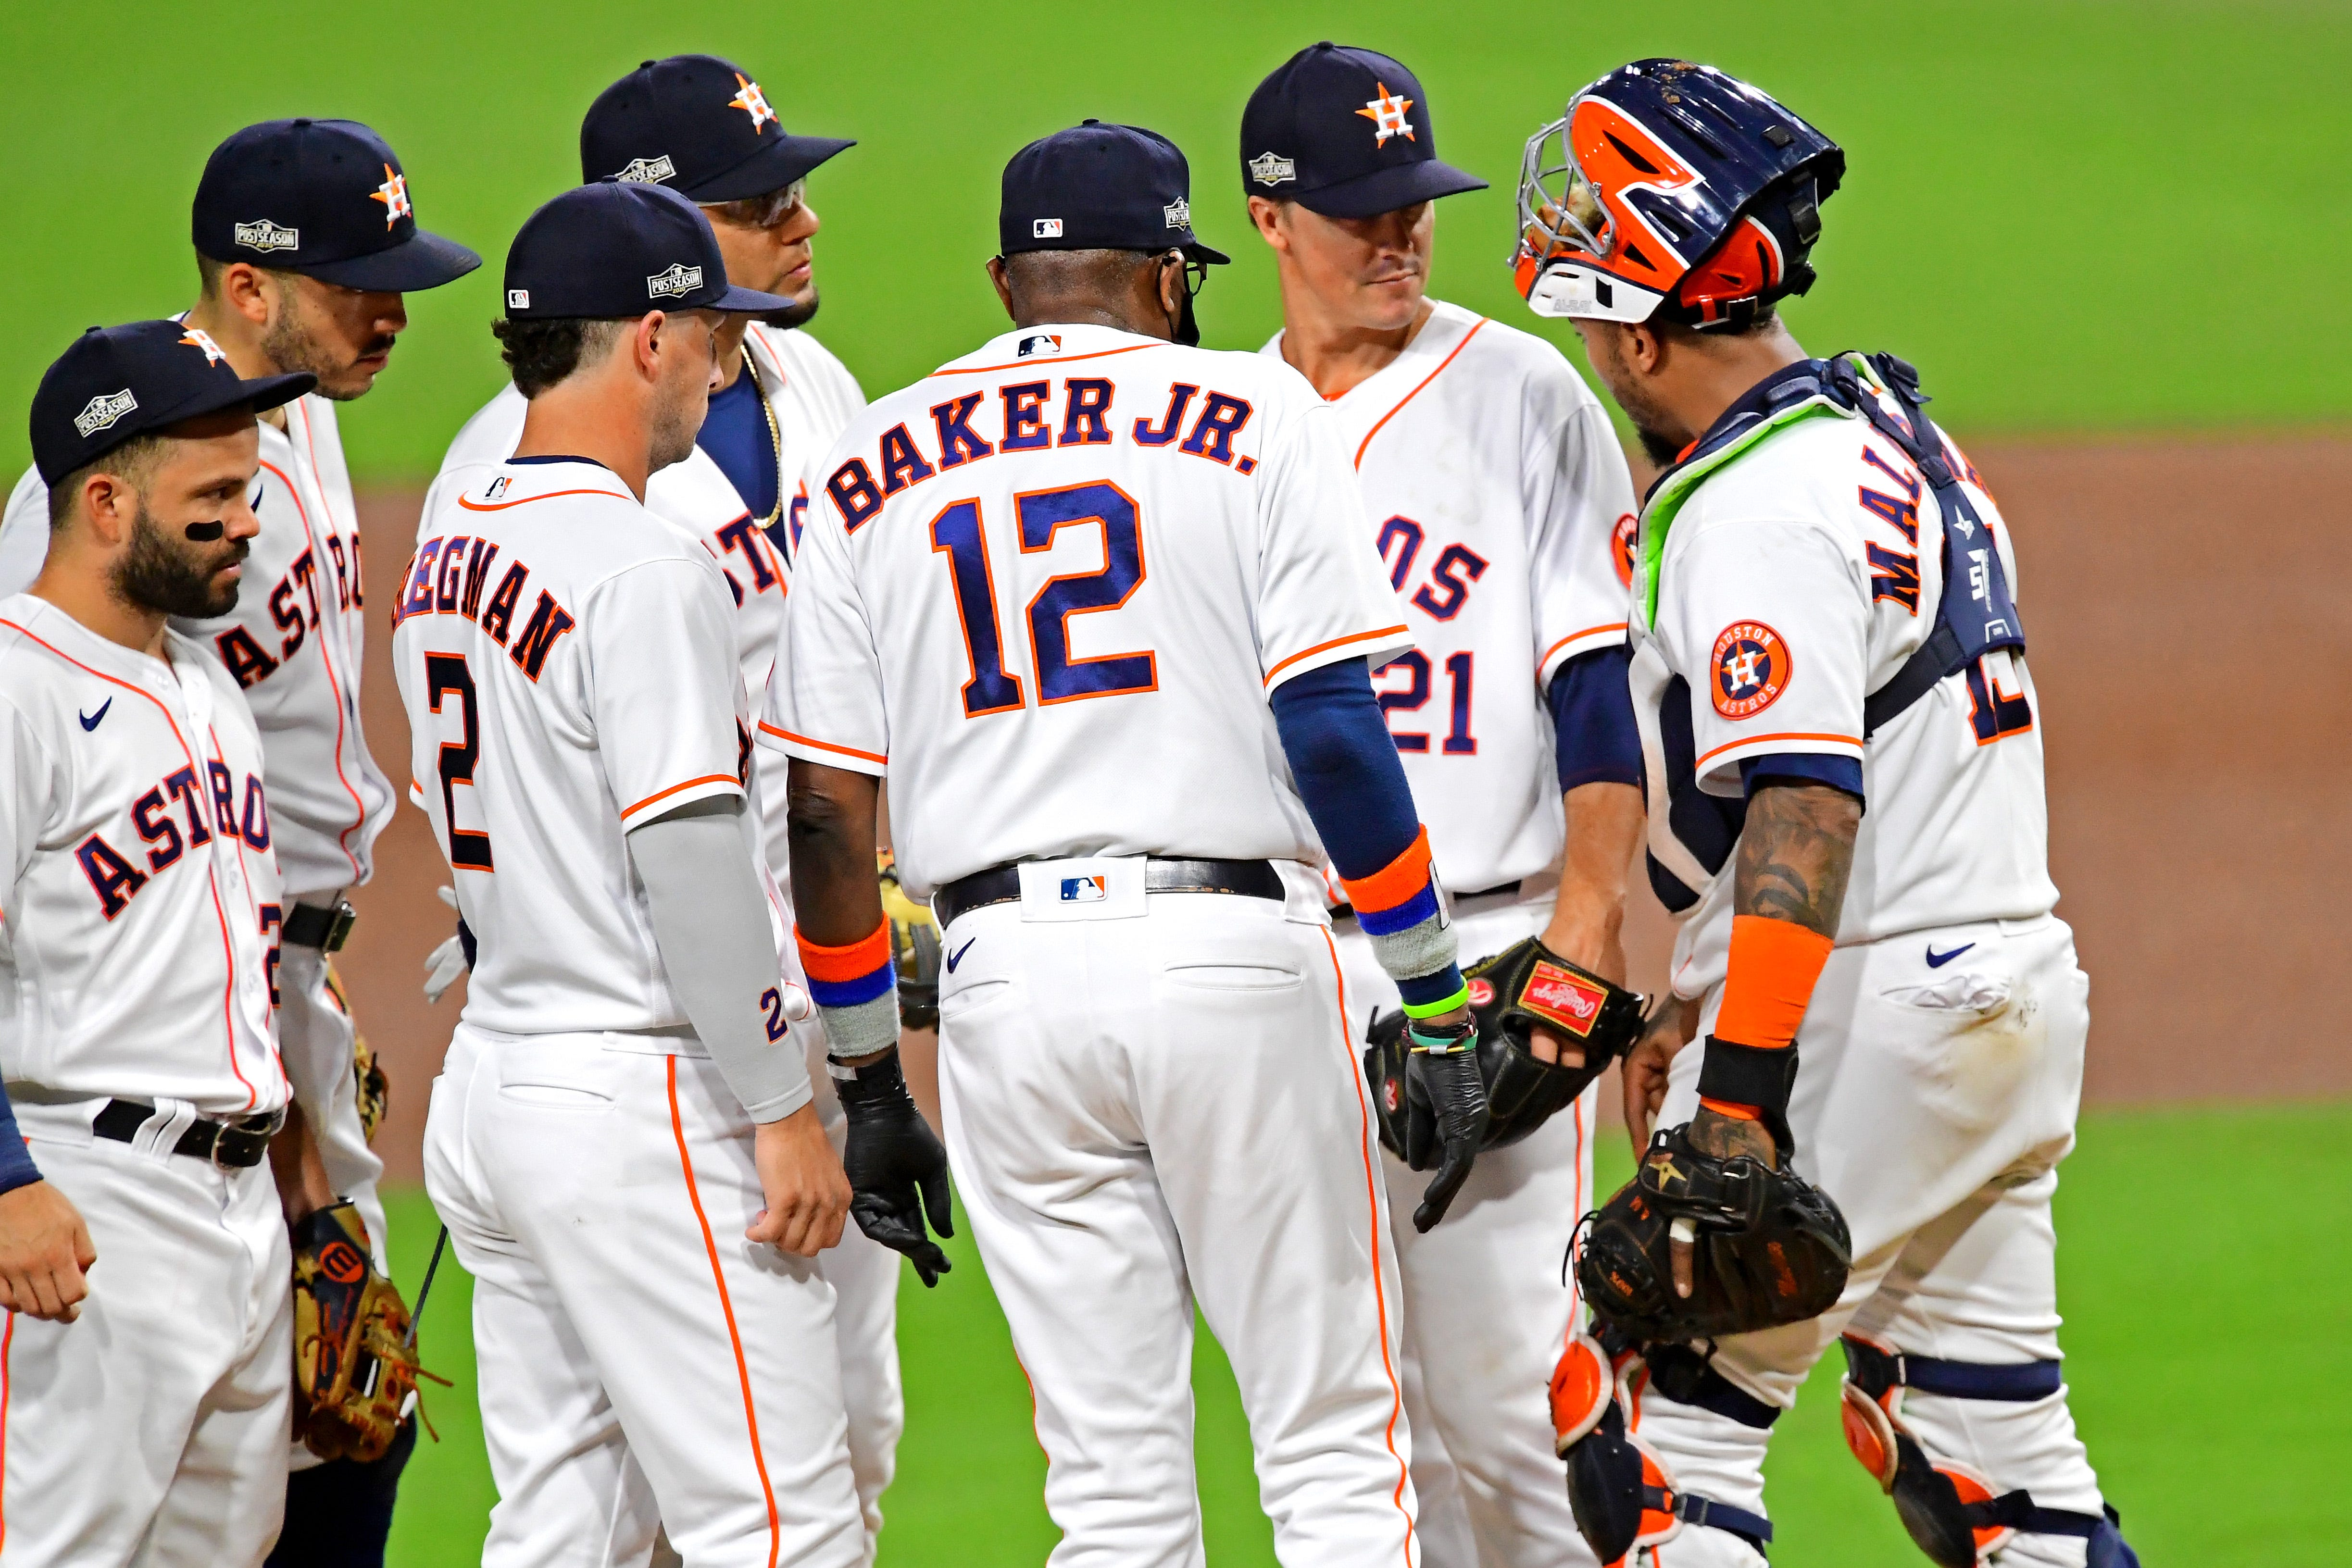 'Nobody's ready to go home:' Manager Dusty Baker's old-school decisions pay off for Astros in ALCS Game 4